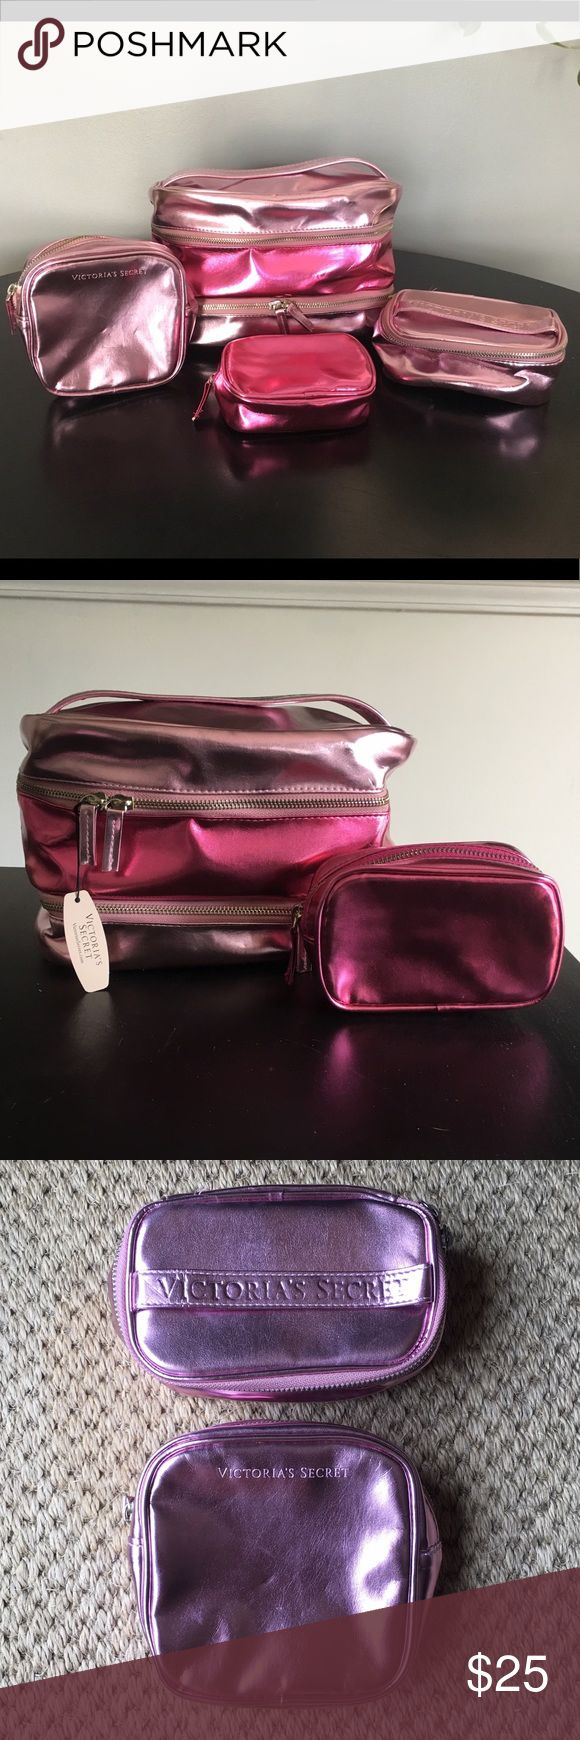 Victoria's Secret Train Case Set 4-piece set. The large case and small, dark pink case have not been used. The two lighter pieces have been gently used. I did stuff the large case with grocery bags to help keep its shape. There are some crease marks but otherwise all are in good condition. Victoria's Secret Bags Cosmetic Bags & Cases